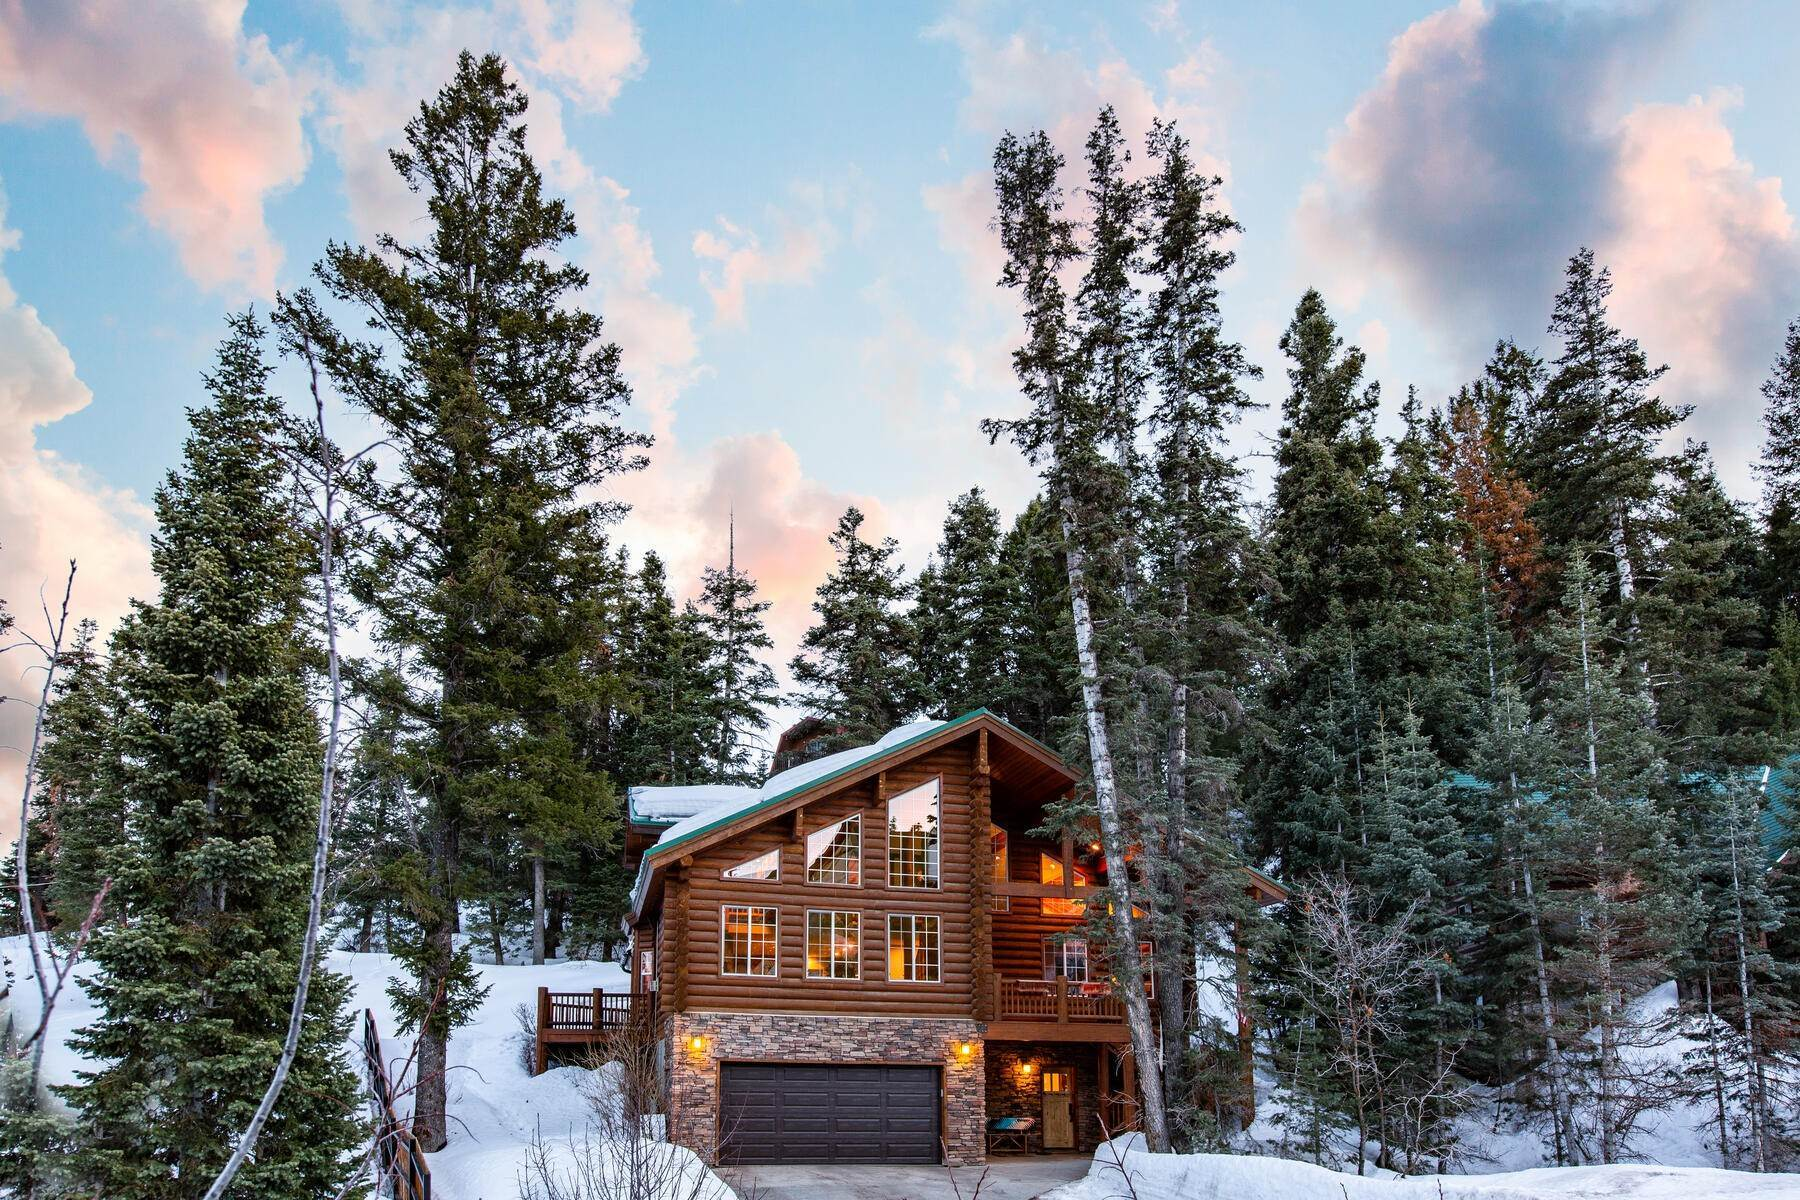 Single Family Homes for Sale at Reimagined Modern Log Home Shines in Summit Park 125 Aspen Ln Park City, Utah 84098 United States